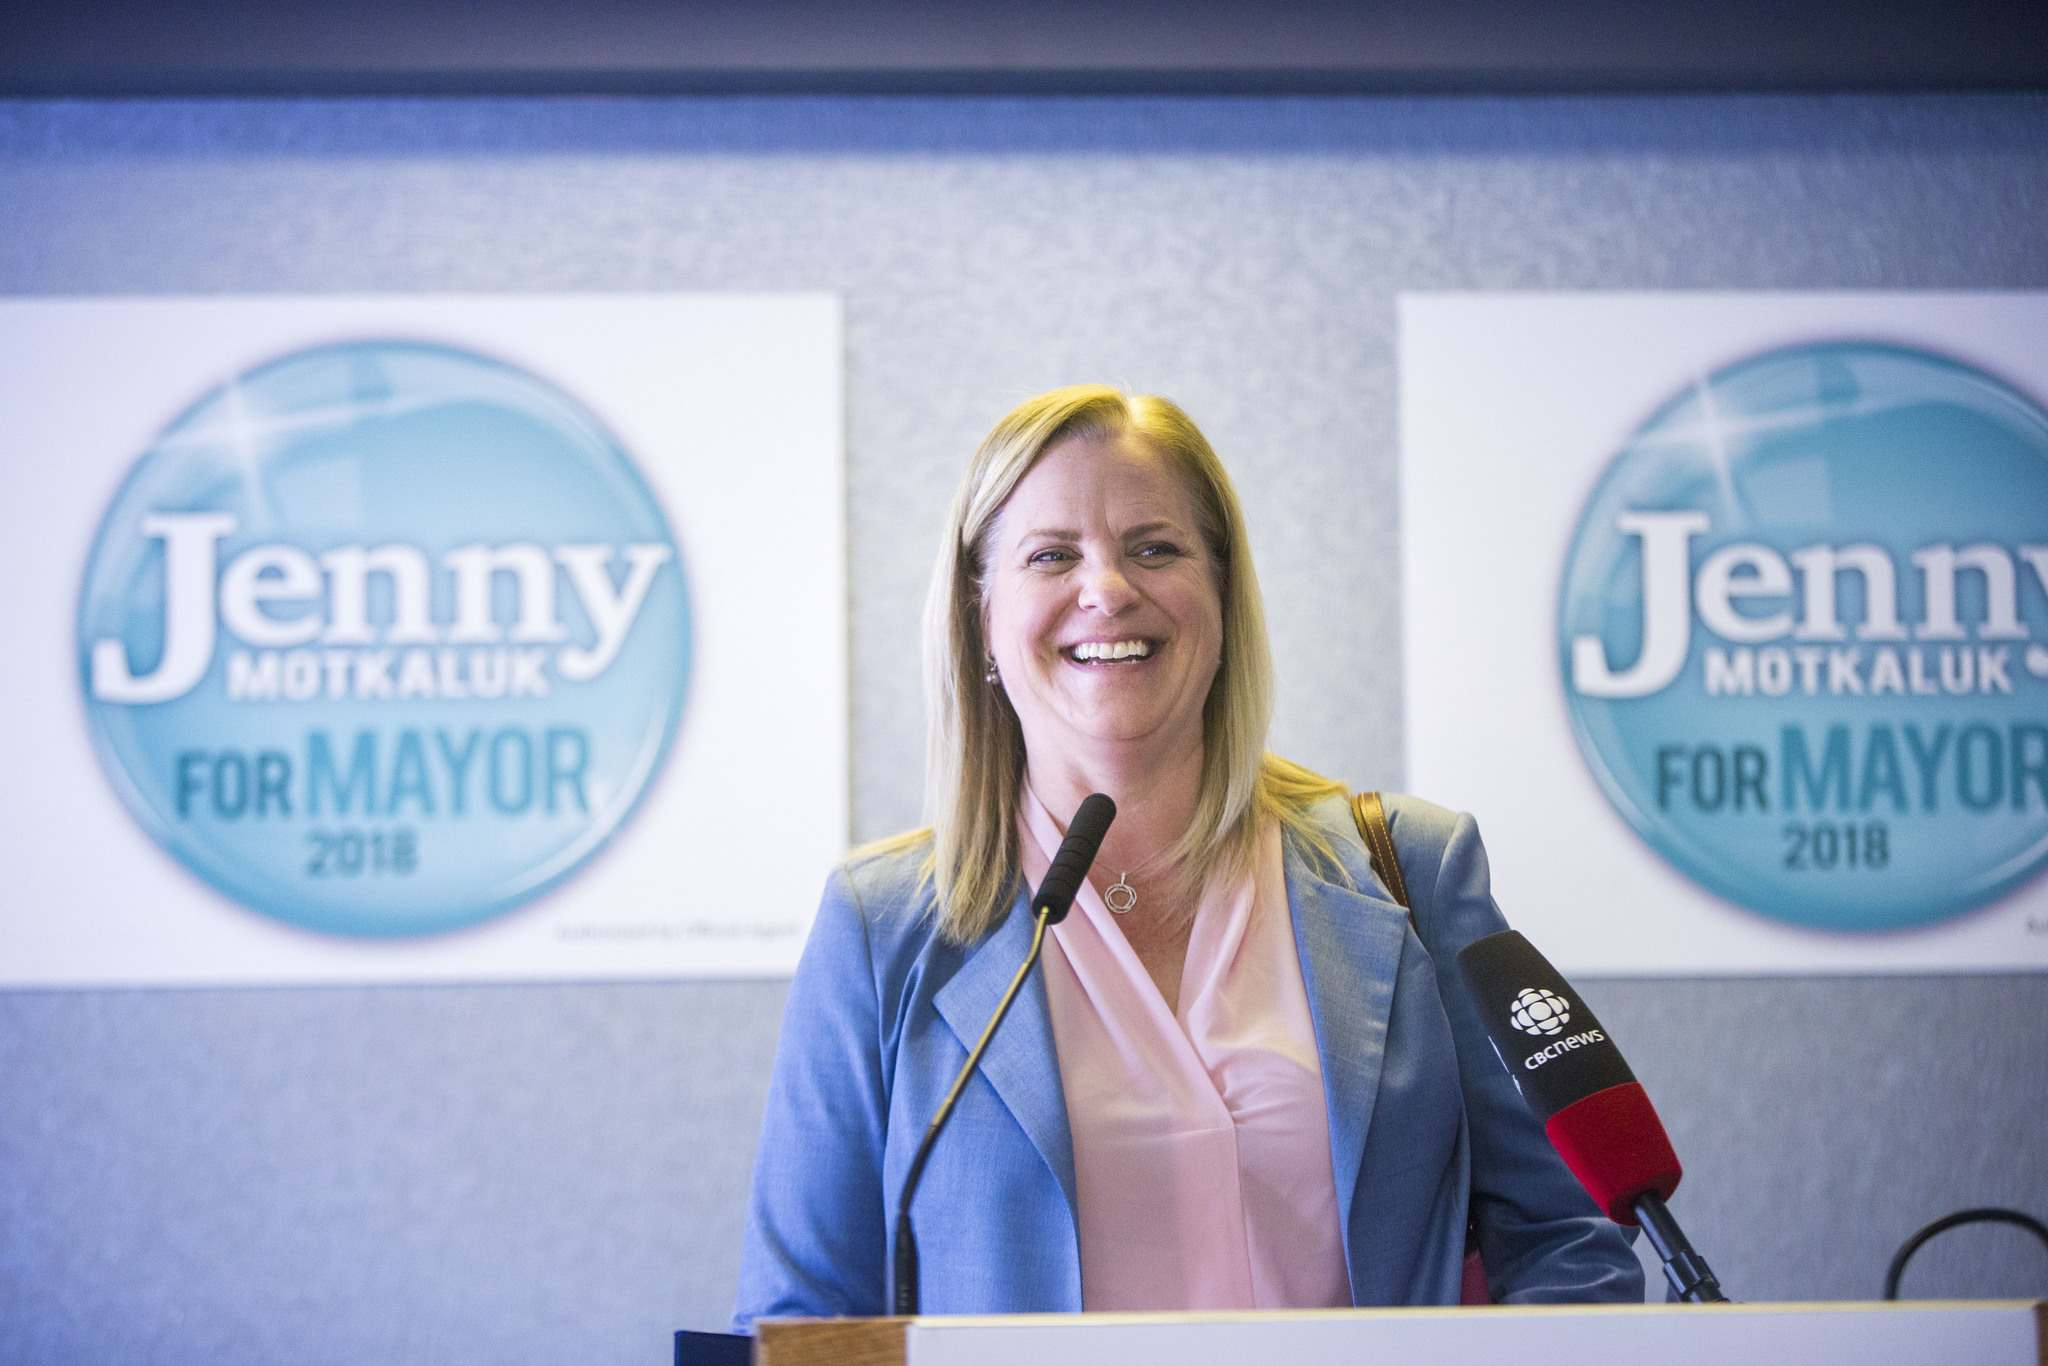 Jenny Motkaluk says that when the idea of running for mayor first came up over the winter, she and her husband focused on the extensive network of political strategists, organizers and fundraisers that they counted among their friends and acquaintances. (Mikaela Mackenzie / Free Press files)